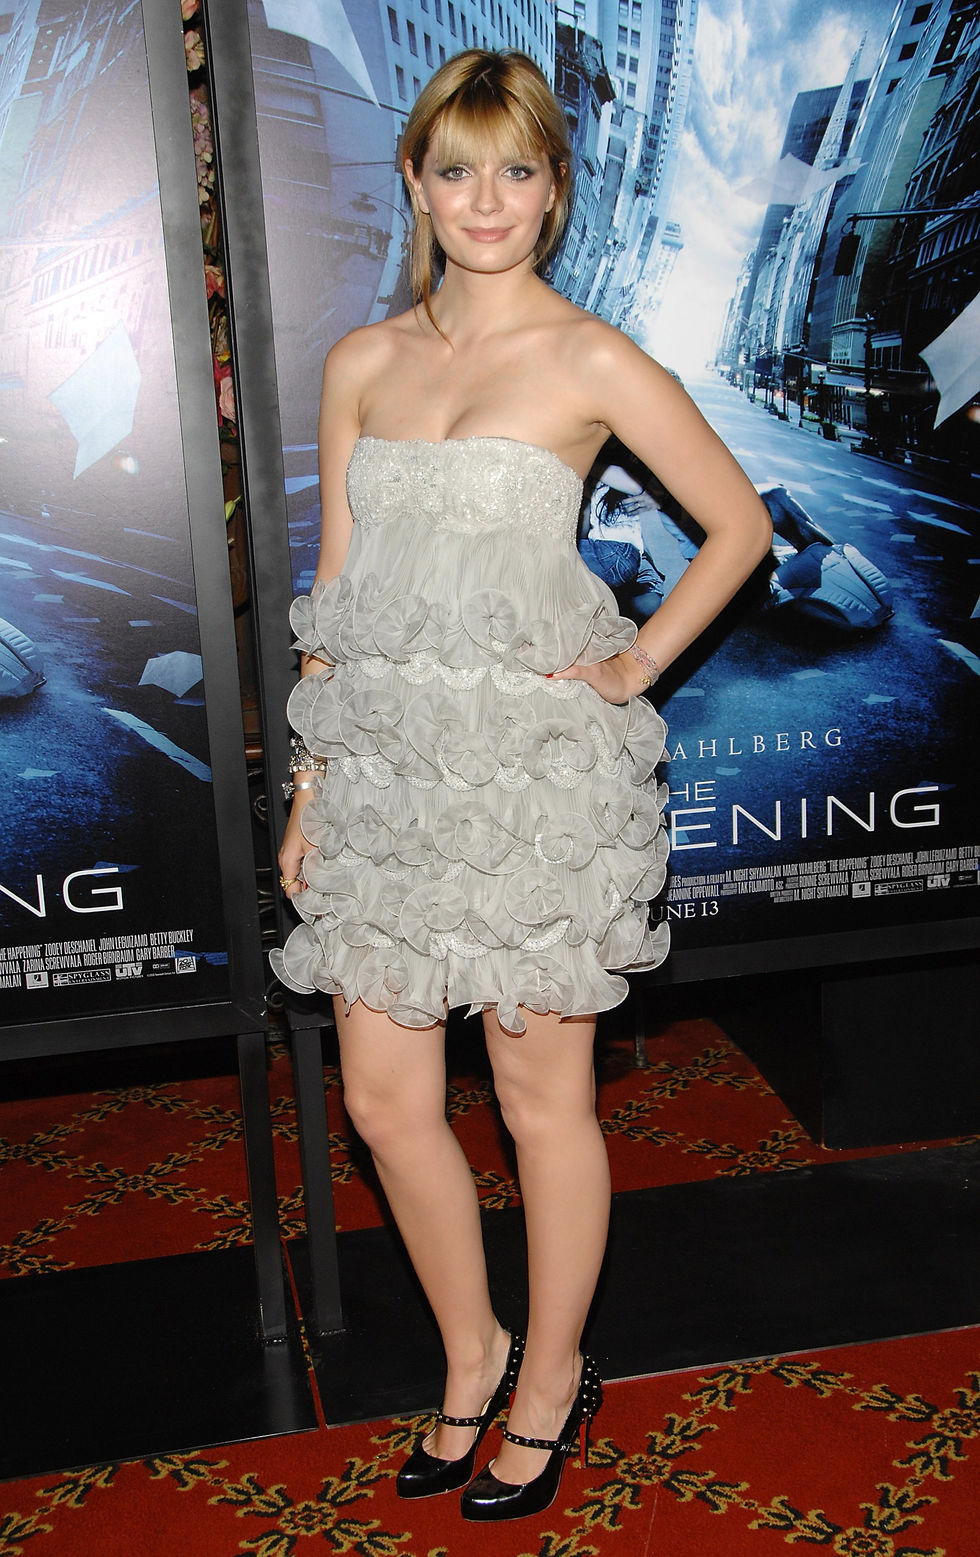 mischa-barton-the-happening-premiere-in-new-york-01